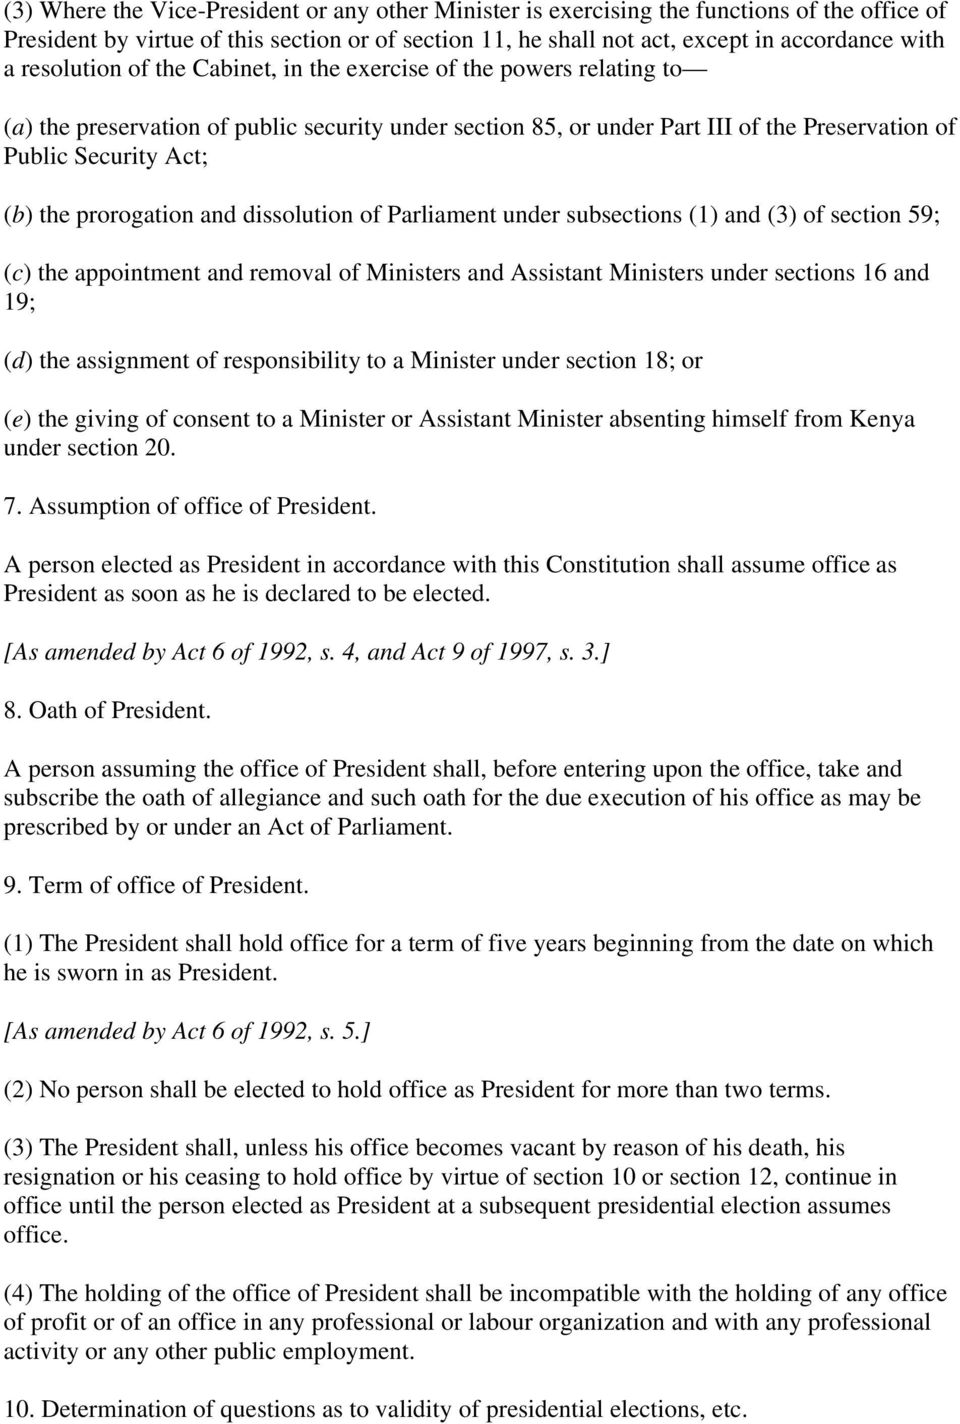 prorogation and dissolution of Parliament under subsections (1) and (3) of section 59; (c) the appointment and removal of Ministers and Assistant Ministers under sections 16 and 19; (d) the